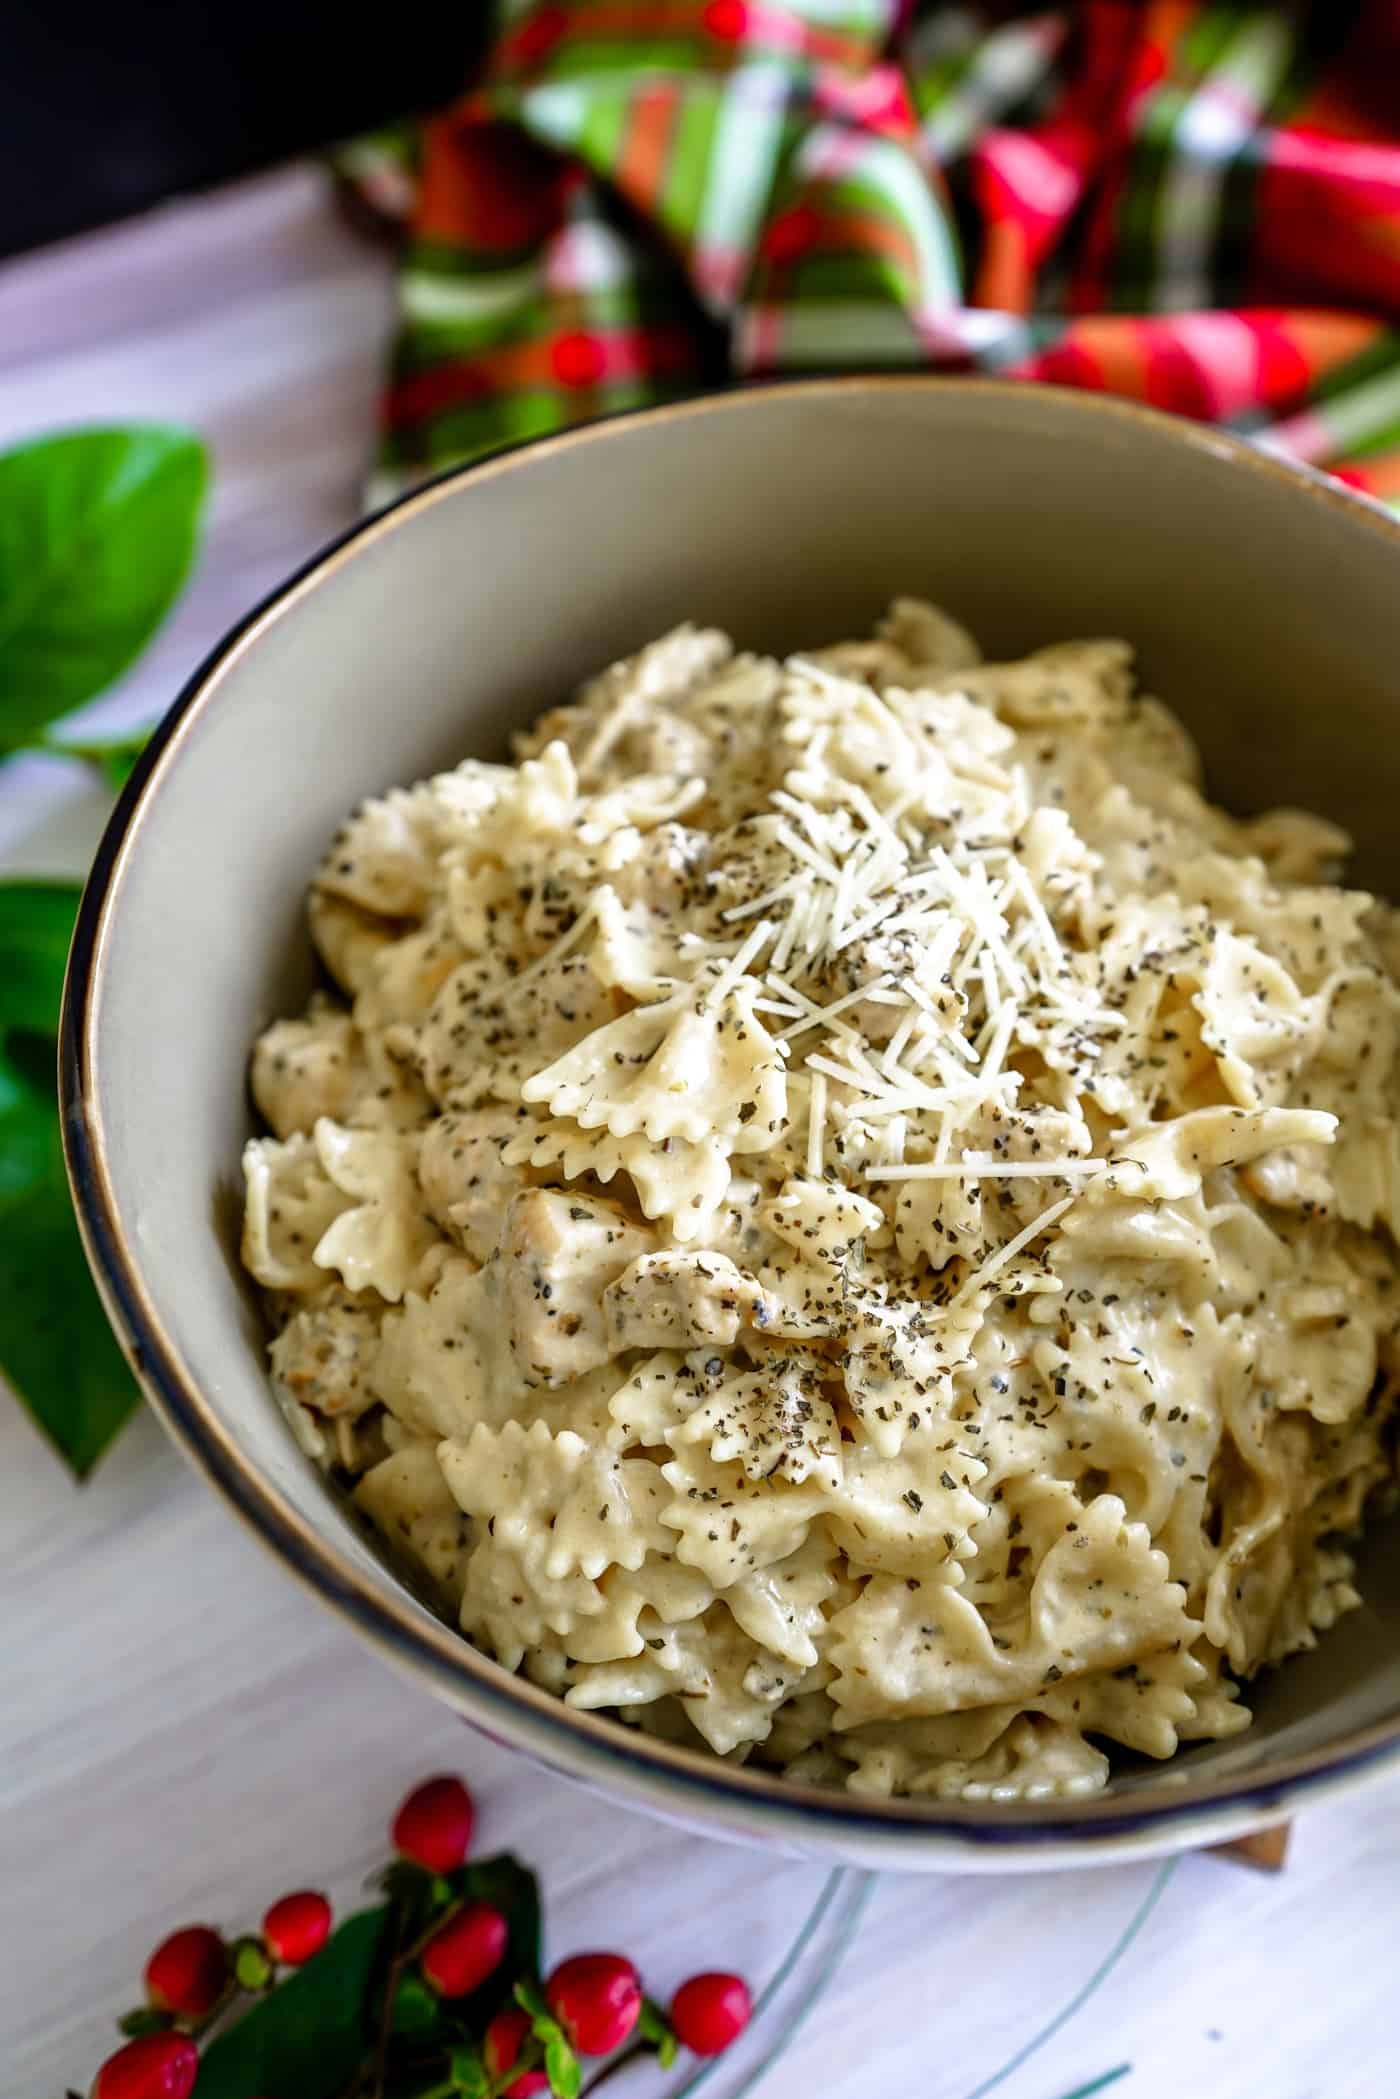 Need a quick and easy dinner tonight everyone in your house will love? Look no further than this Instant Pot Creamy Chicken Pasta! Who doesn't love creamy, garlic Parmesan? Our family loves recipes in the Instant Pot. Give this Instant Pot chicken pasta a try today!